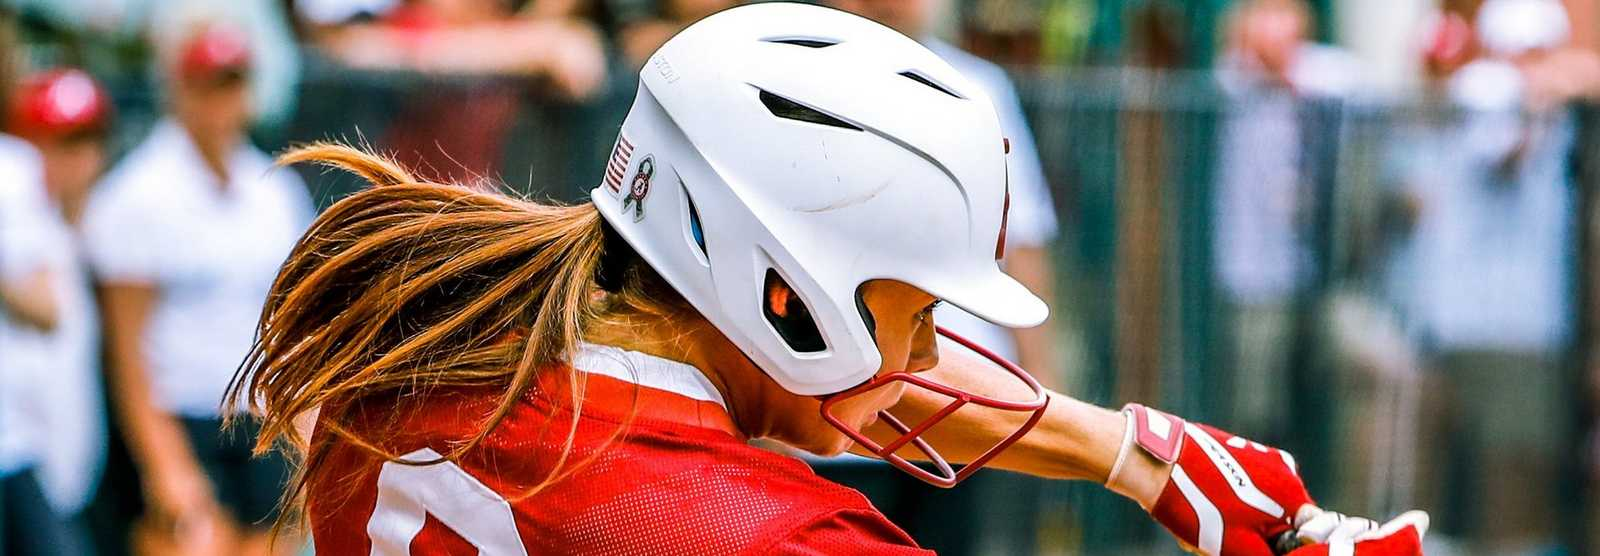 2018-fastpitch-softball-batting-helmets